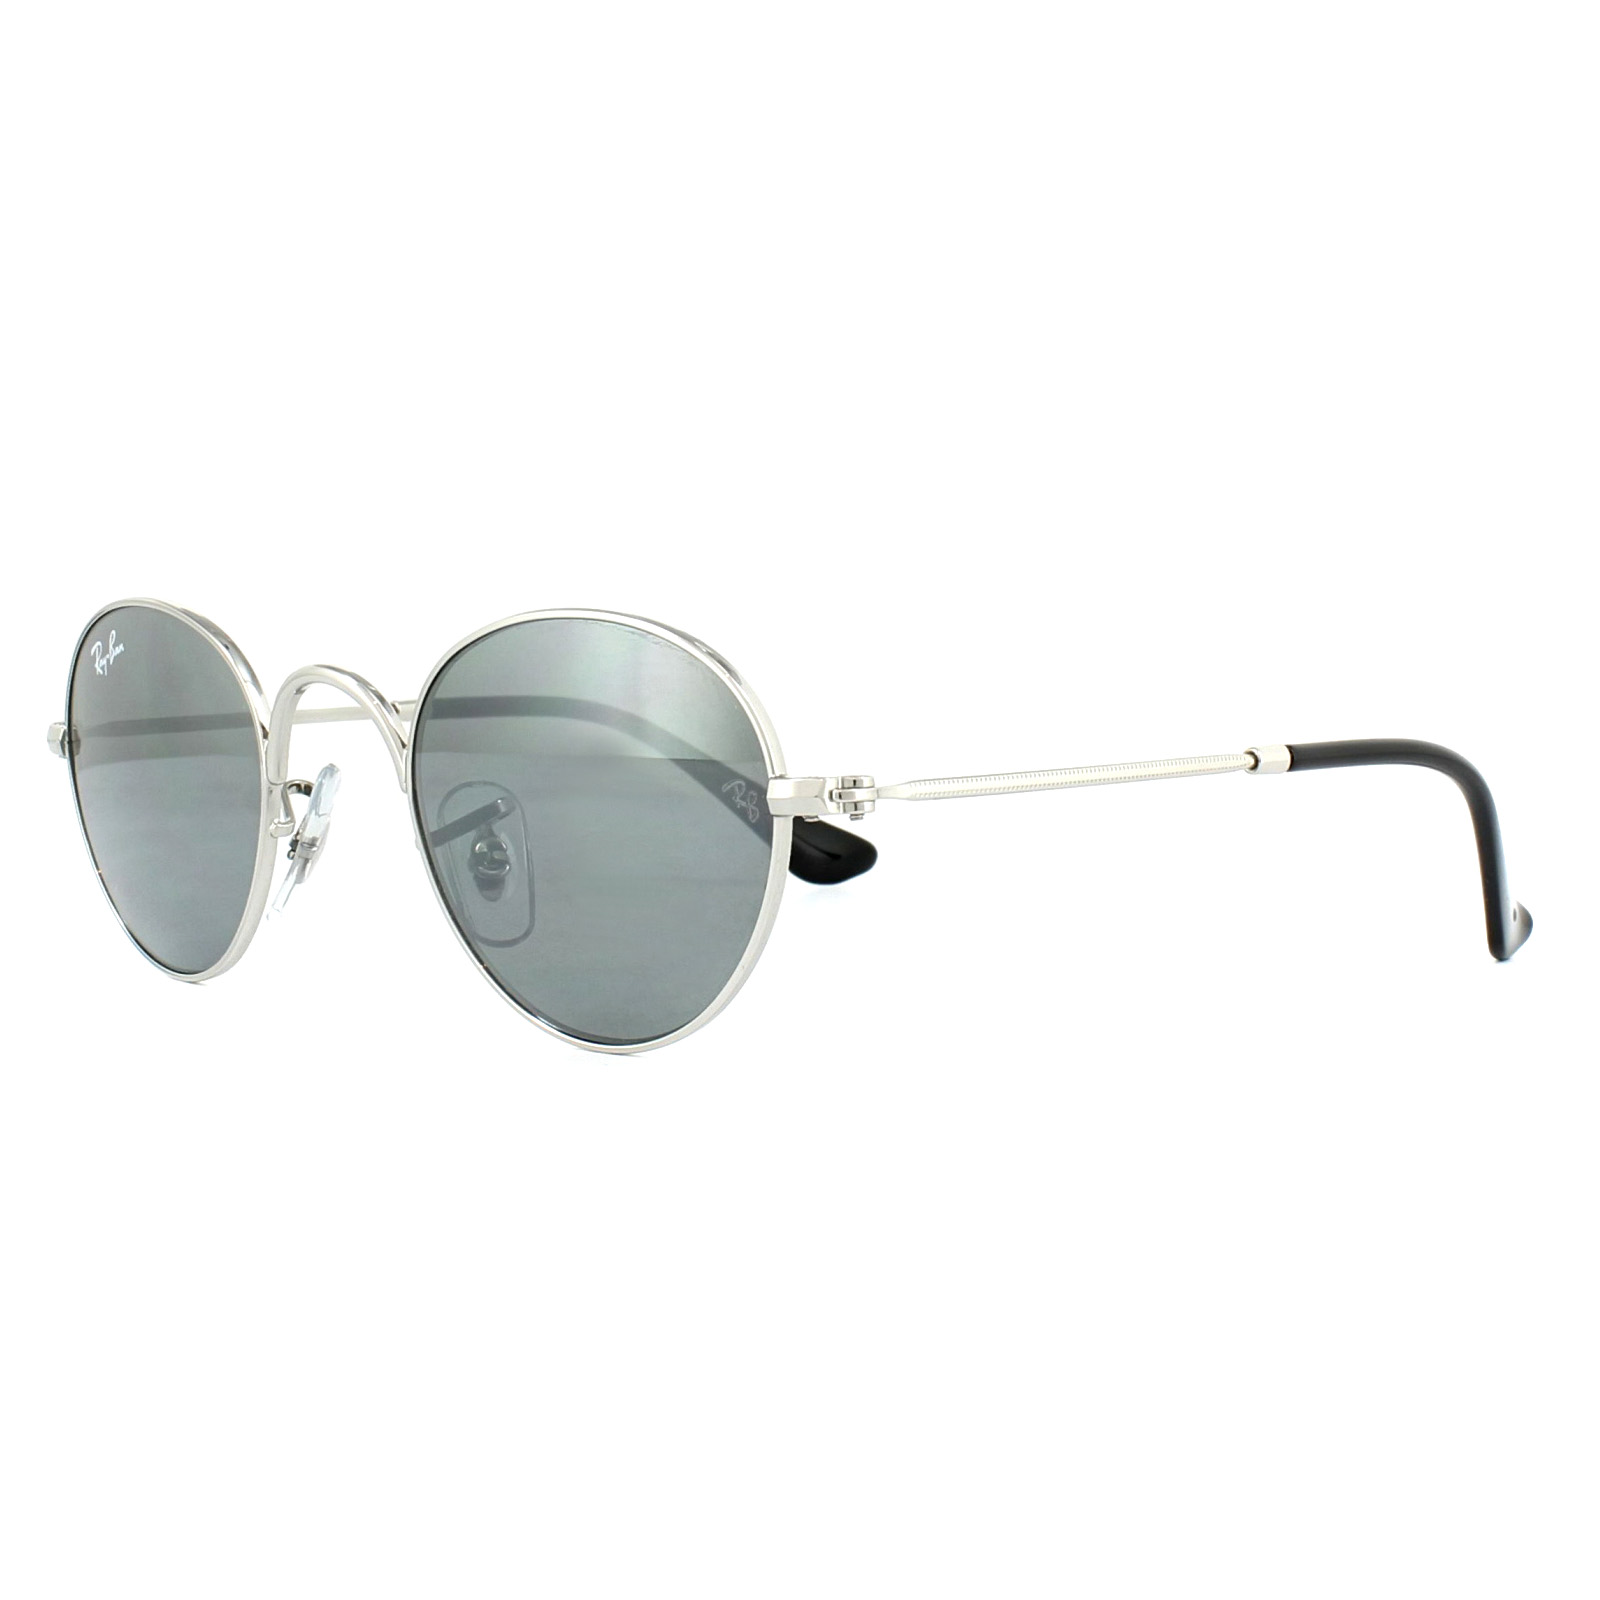 c0e76467040 Ray-Ban Junior Sunglasses 9537S 212 6G Silver Grey Mirror ...